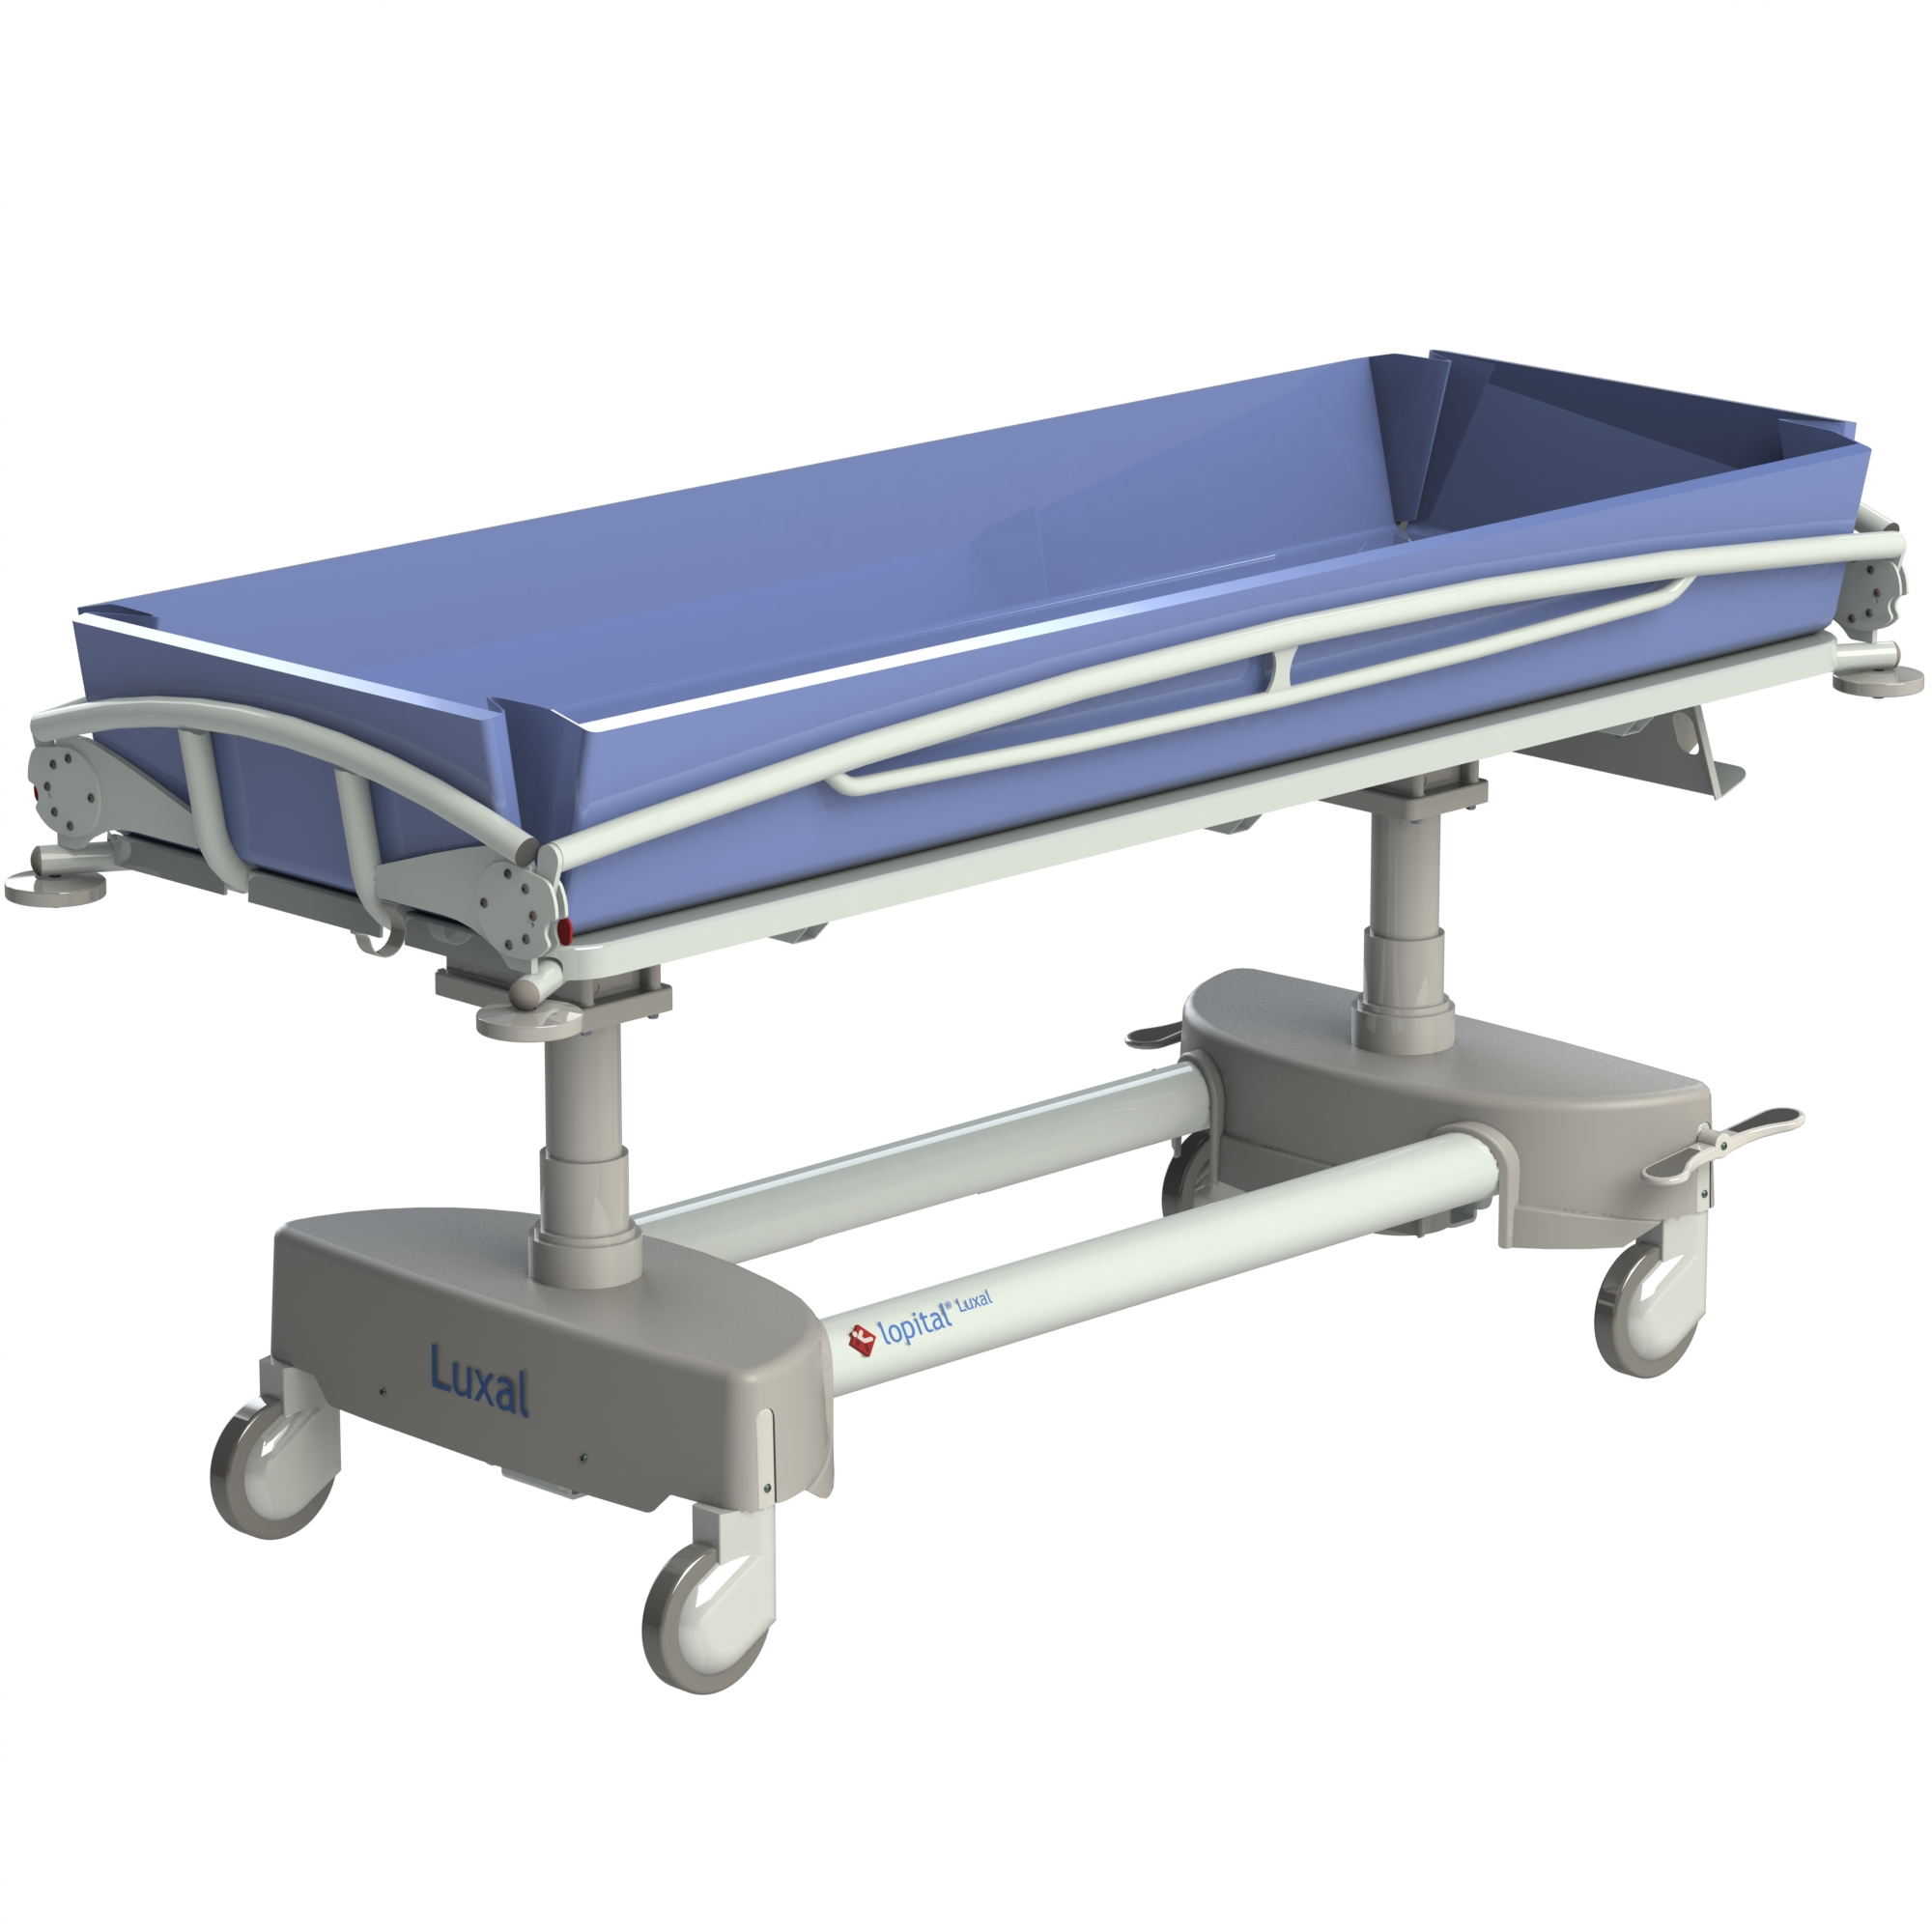 jr healthcare rail atlas products ais tr shower bariatric side folded trolley